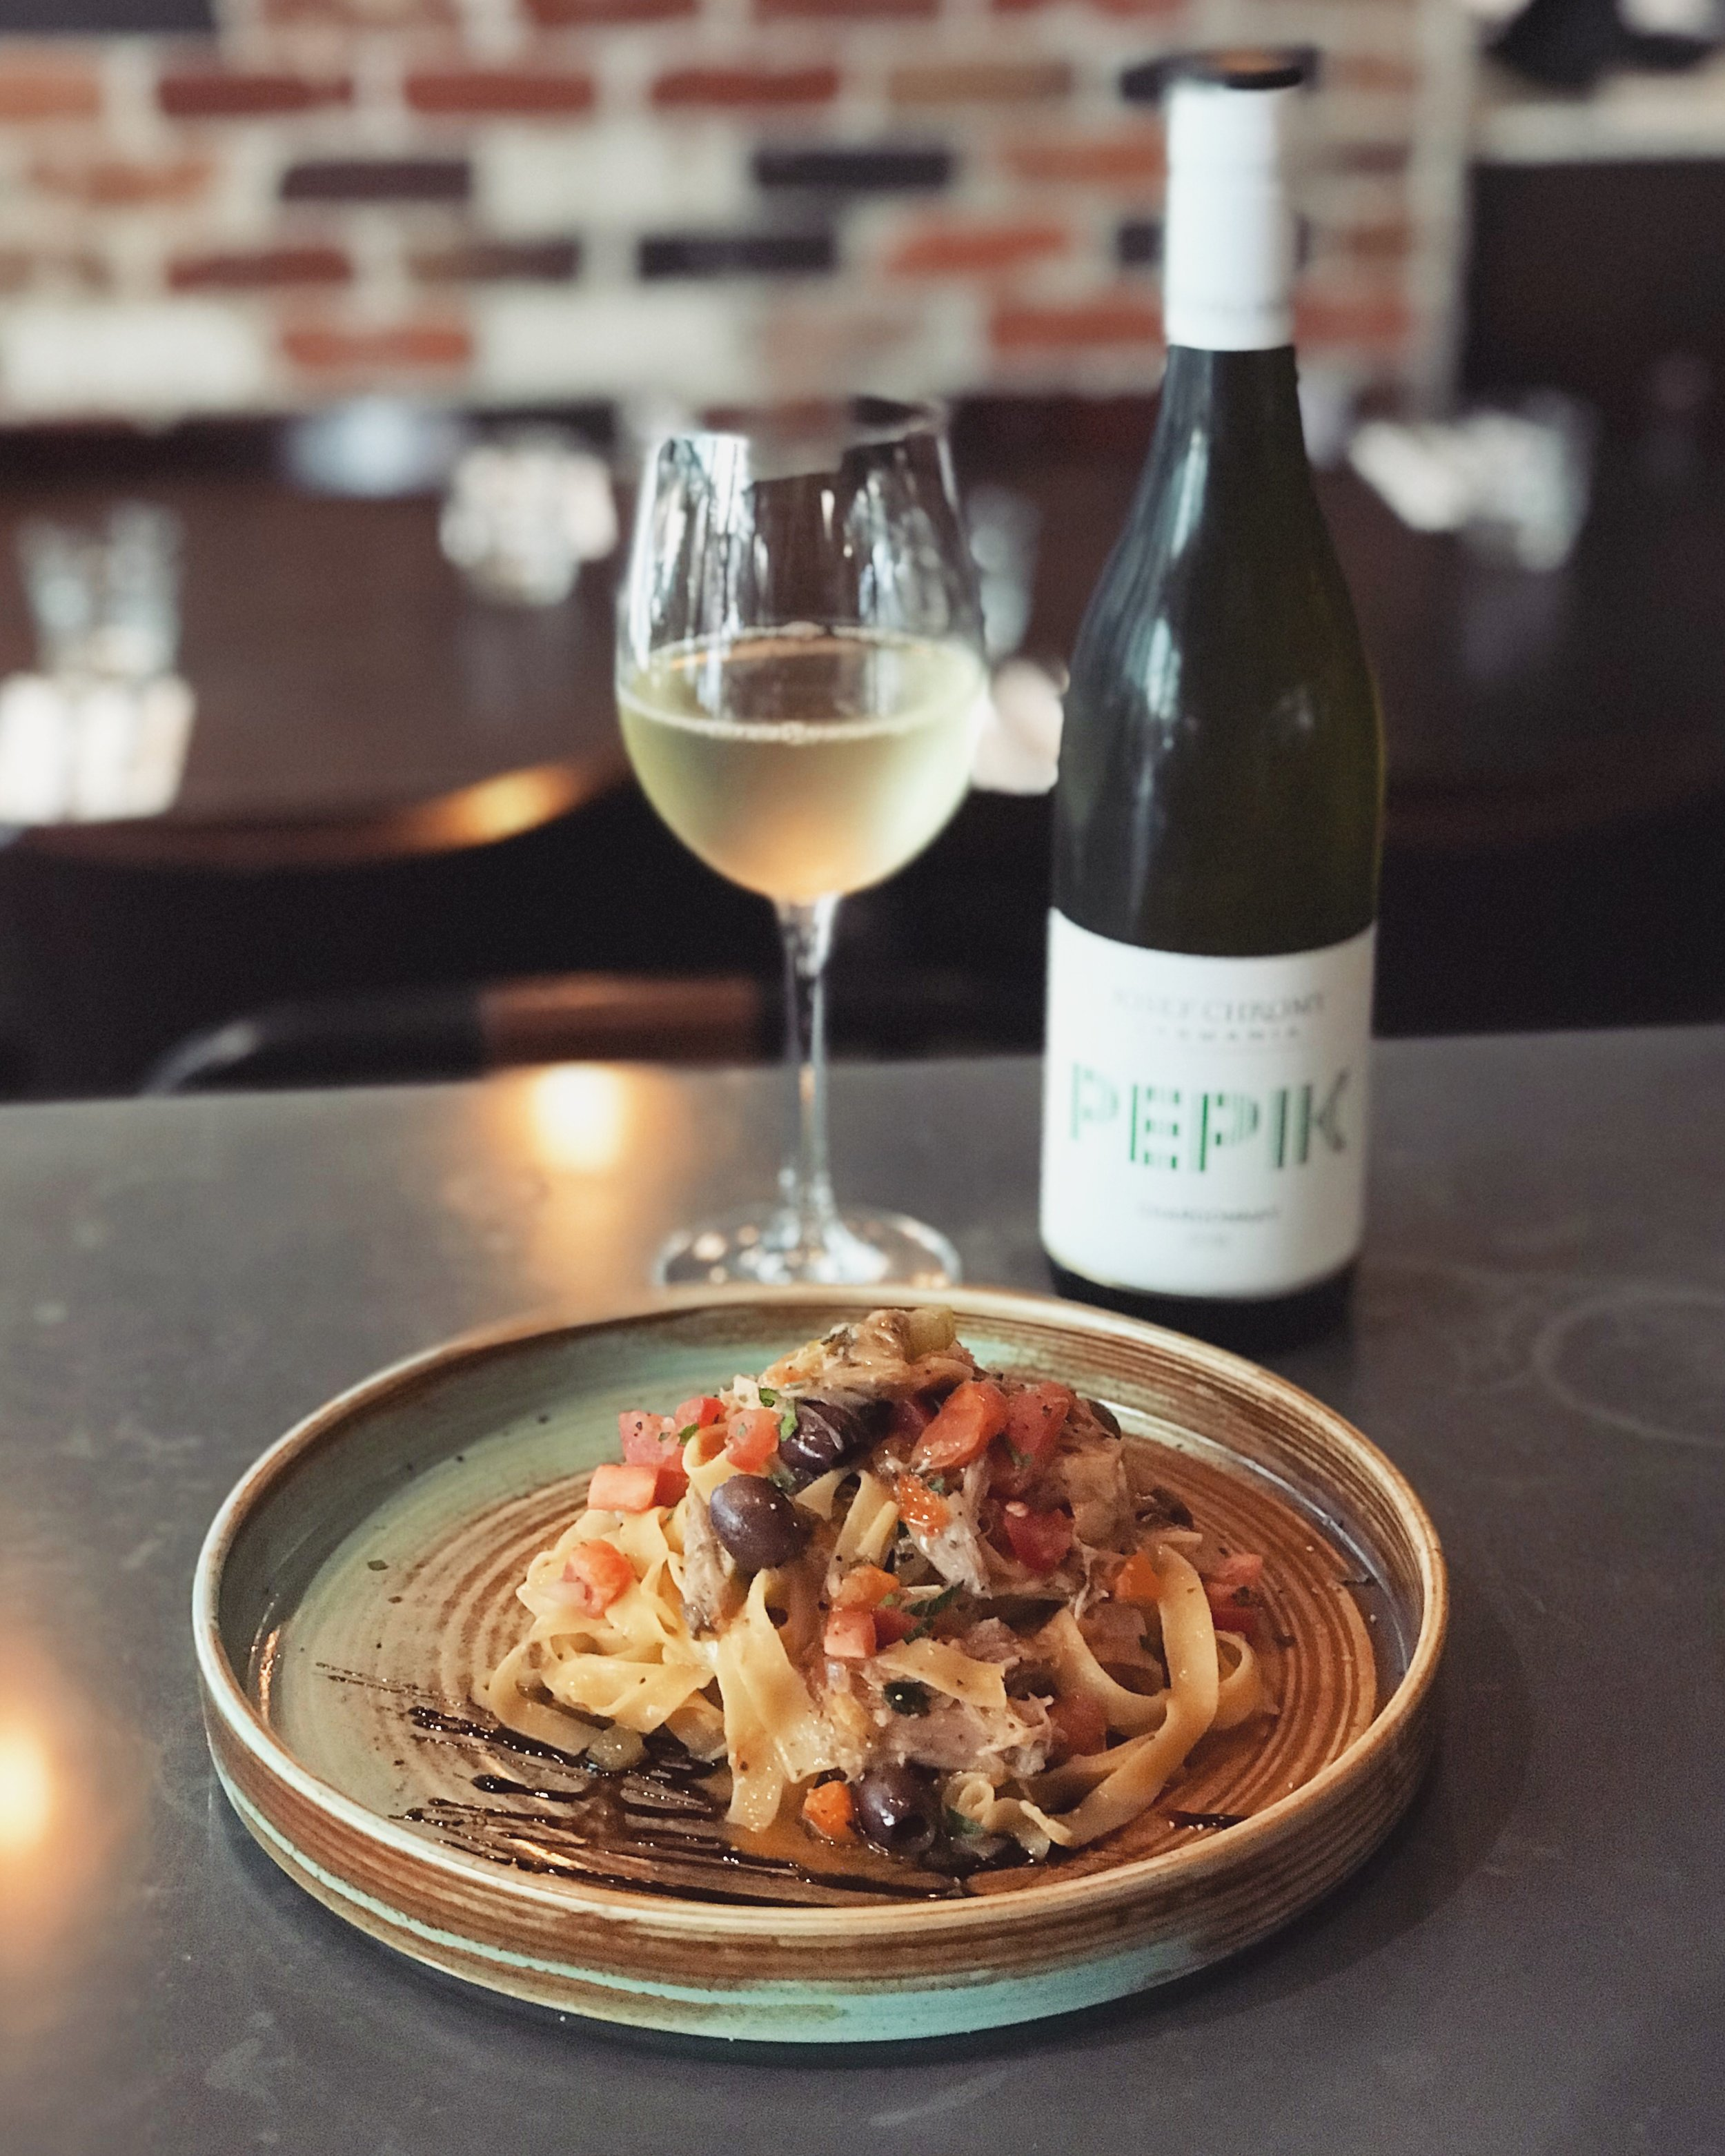 3-9 April - ~ R a g ù d' A n a t r a ~Delicious egg fettuccine wrapped around by a slow-cooked duck ragù with Ligurian olives, tomato concassé and a pinch of chilli flakes to spice it up.Best complemented by a jovial glass of Josef Chromy 'Pepik' Chardonnay (Tasmania).